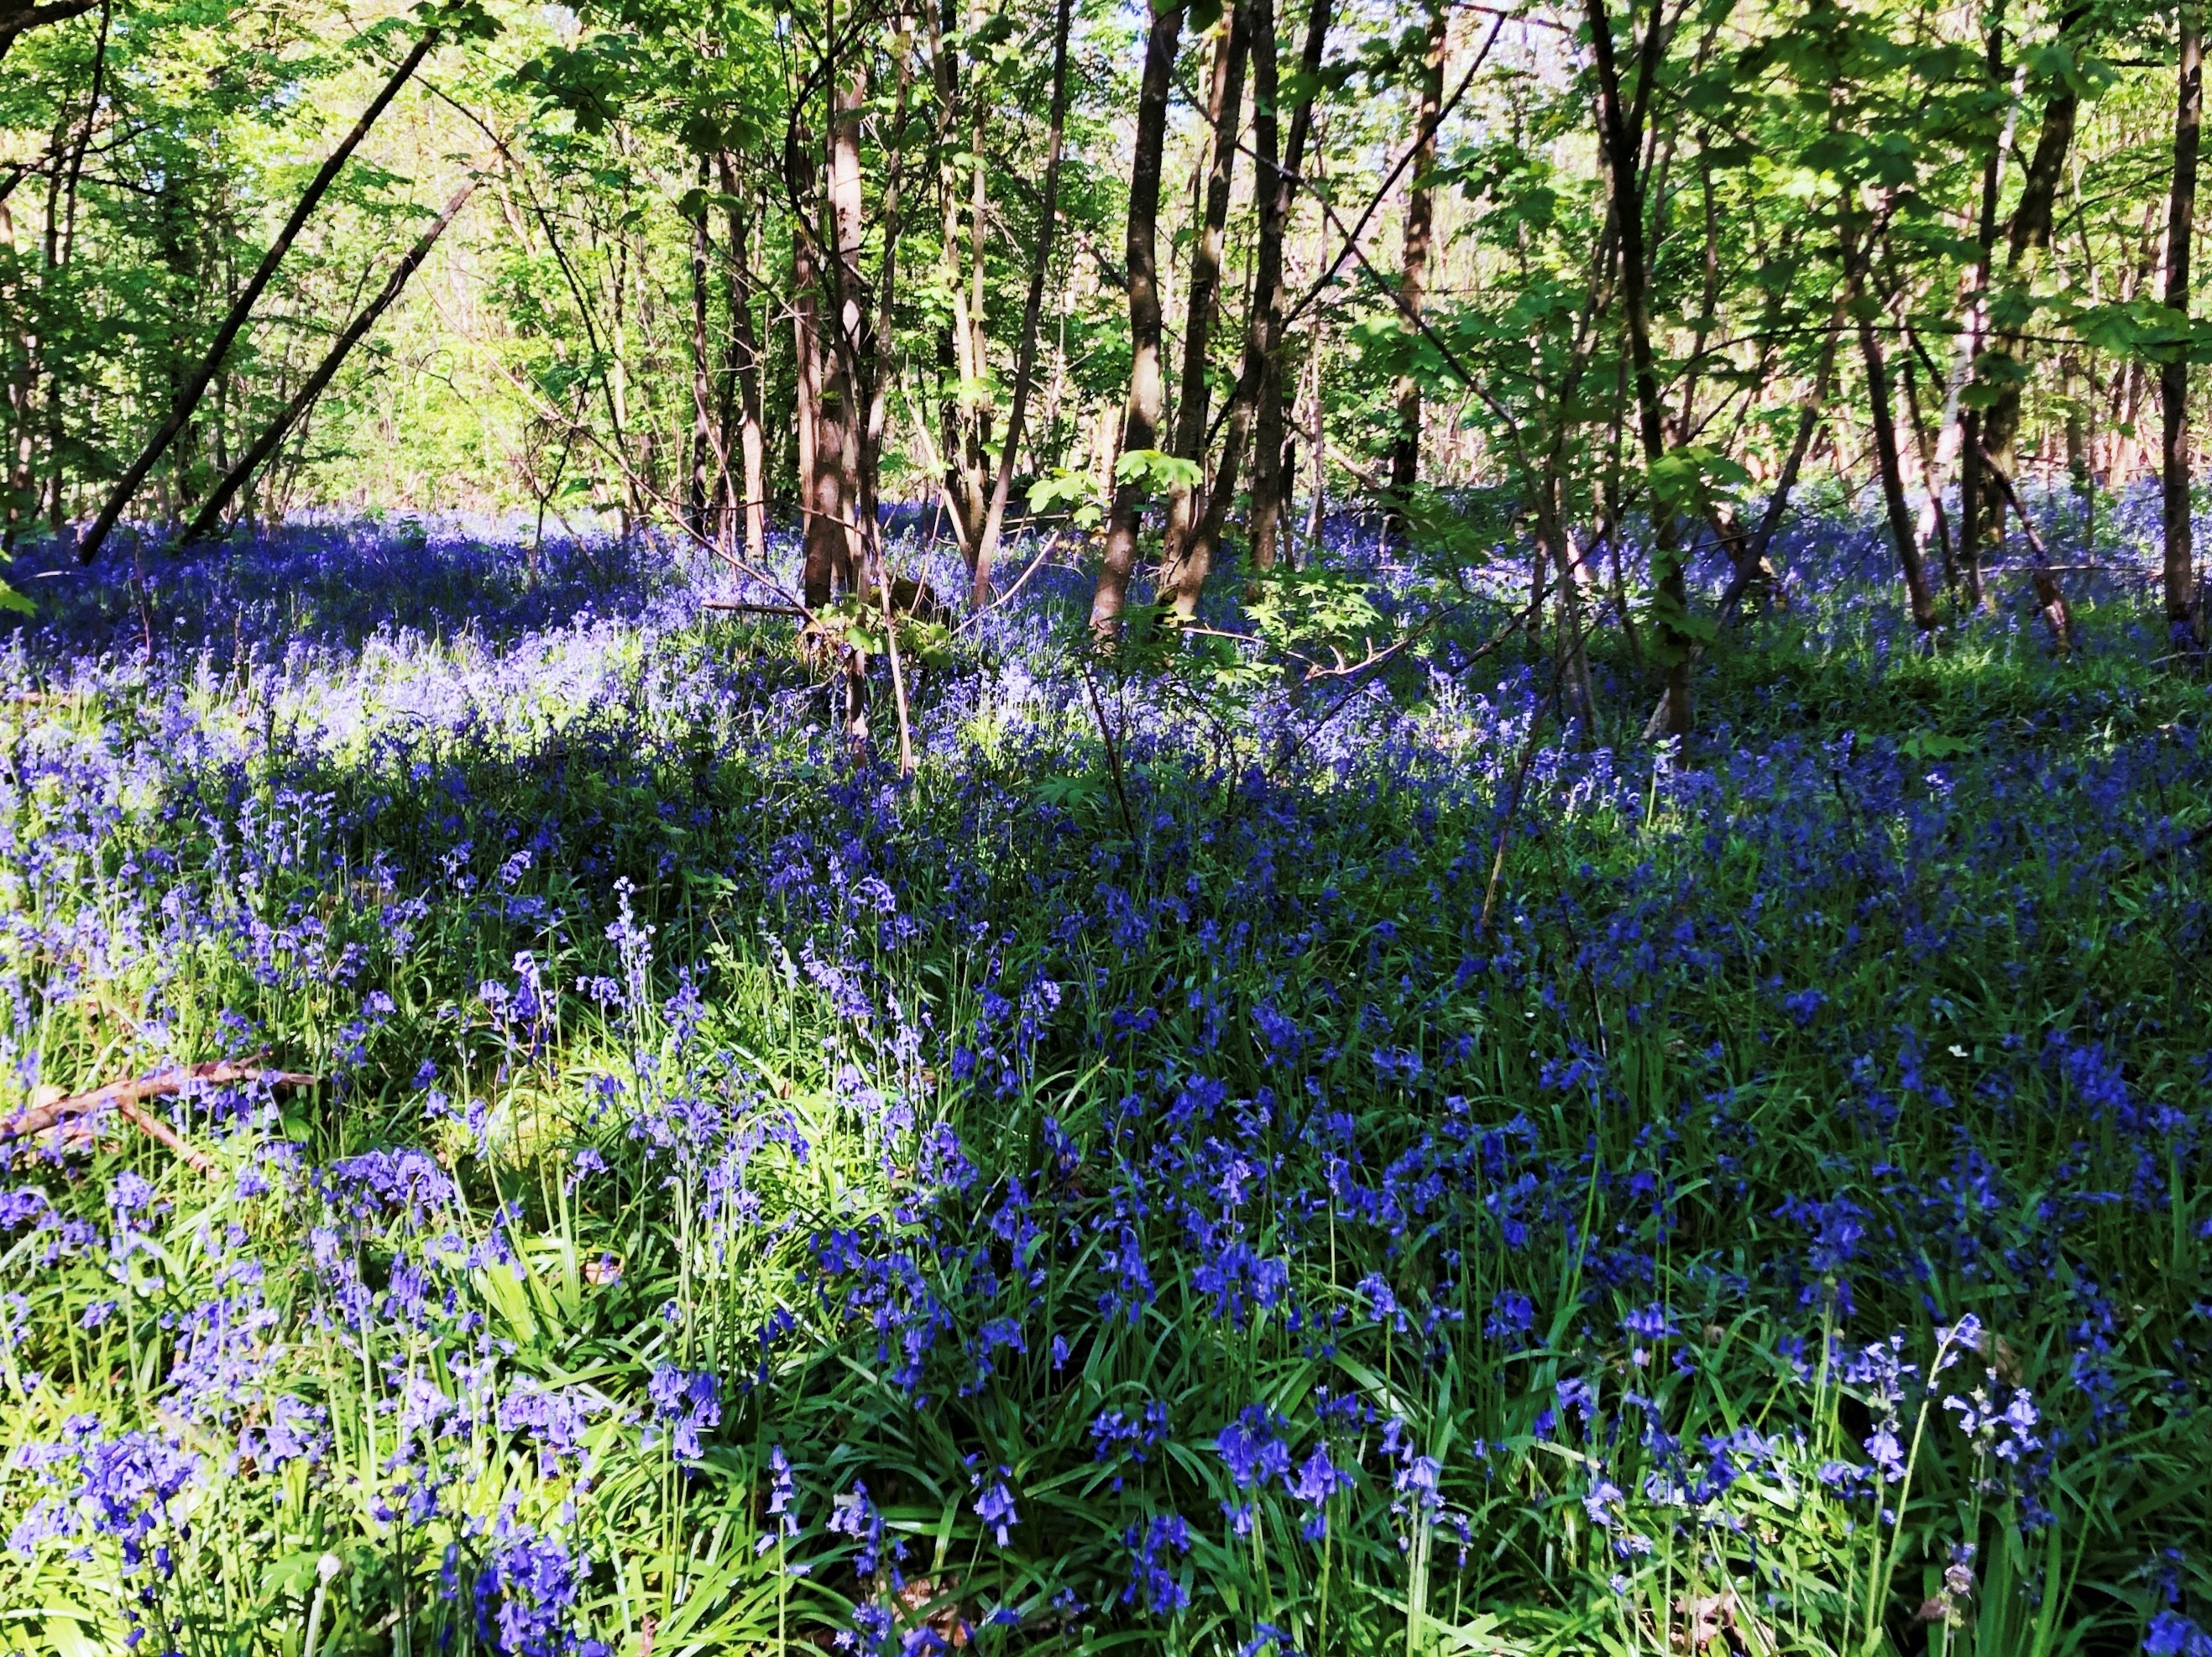 A meadow of bluebells, partly shaded by a forrest of small trees behind